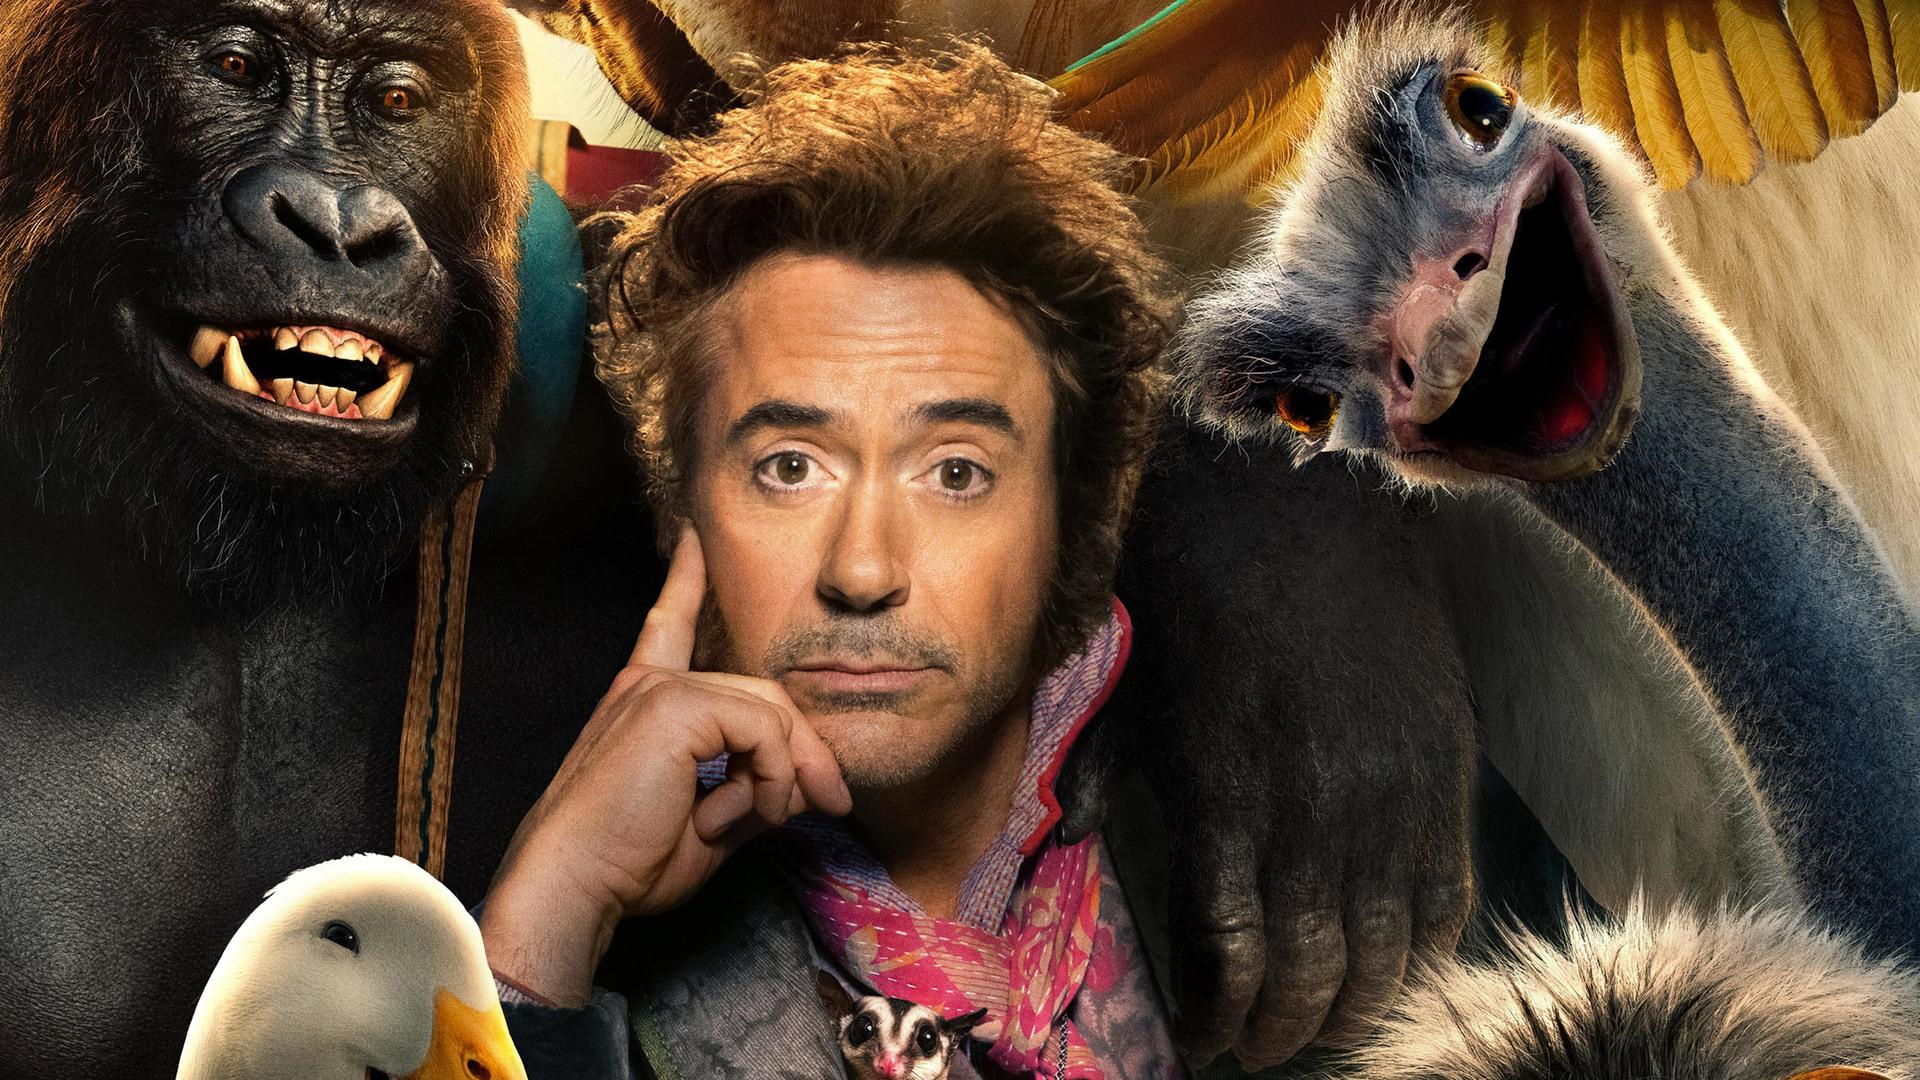 Robert Downey Jr's Dolittle Proves MCU Loyalty Is Only Skin-Deep - Fortress of Solitude